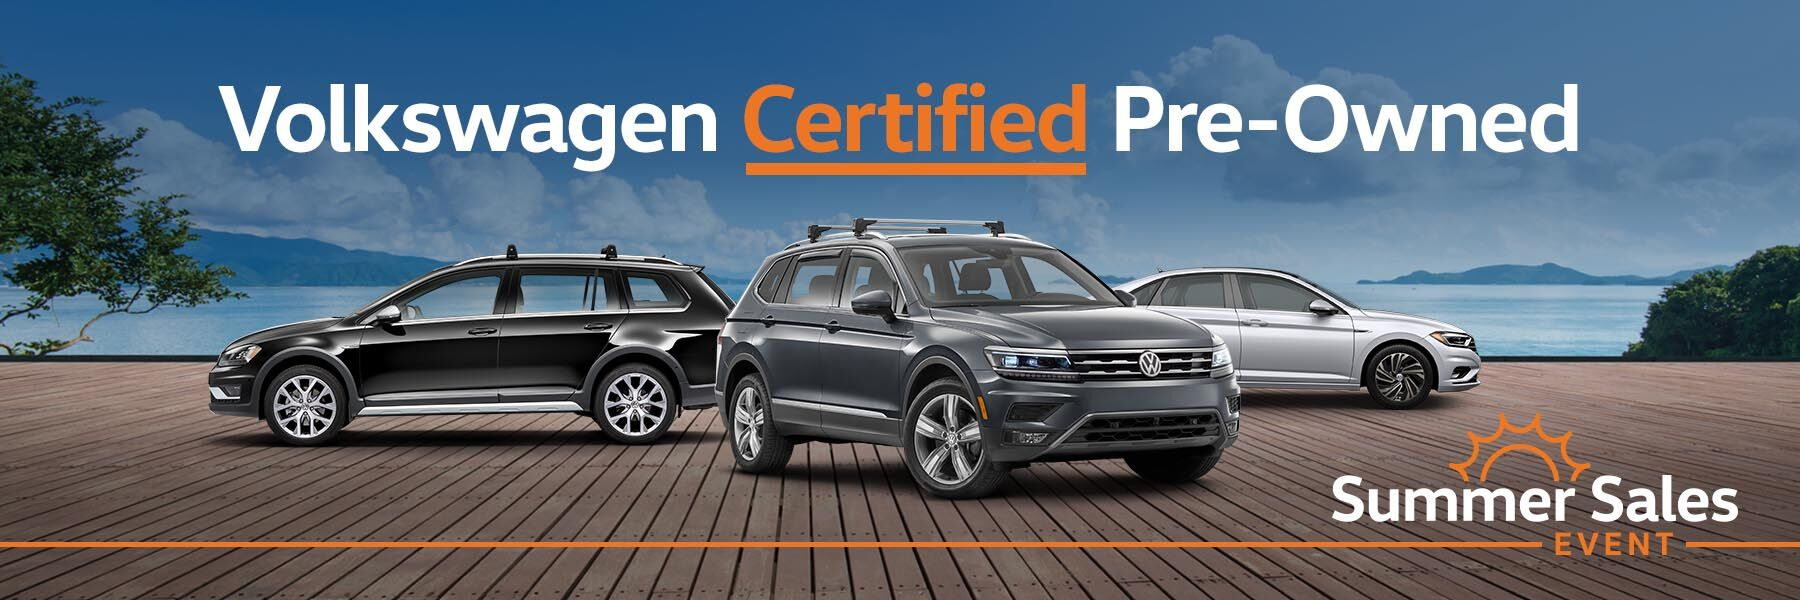 Volkswagen Certified Pre-Owned in Watertown, NY